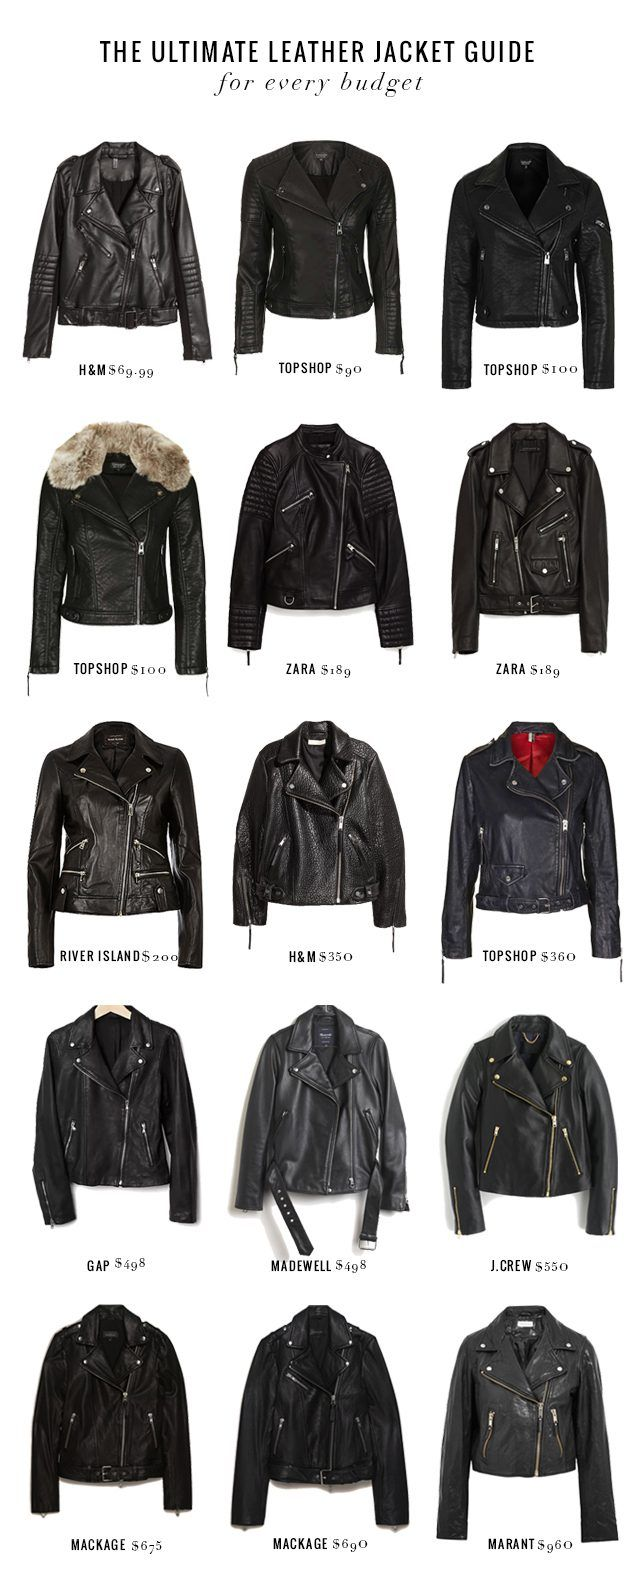 How to dress an apple shaped figure ehow - 15 Leather Jackets At Every Price Point Ehow